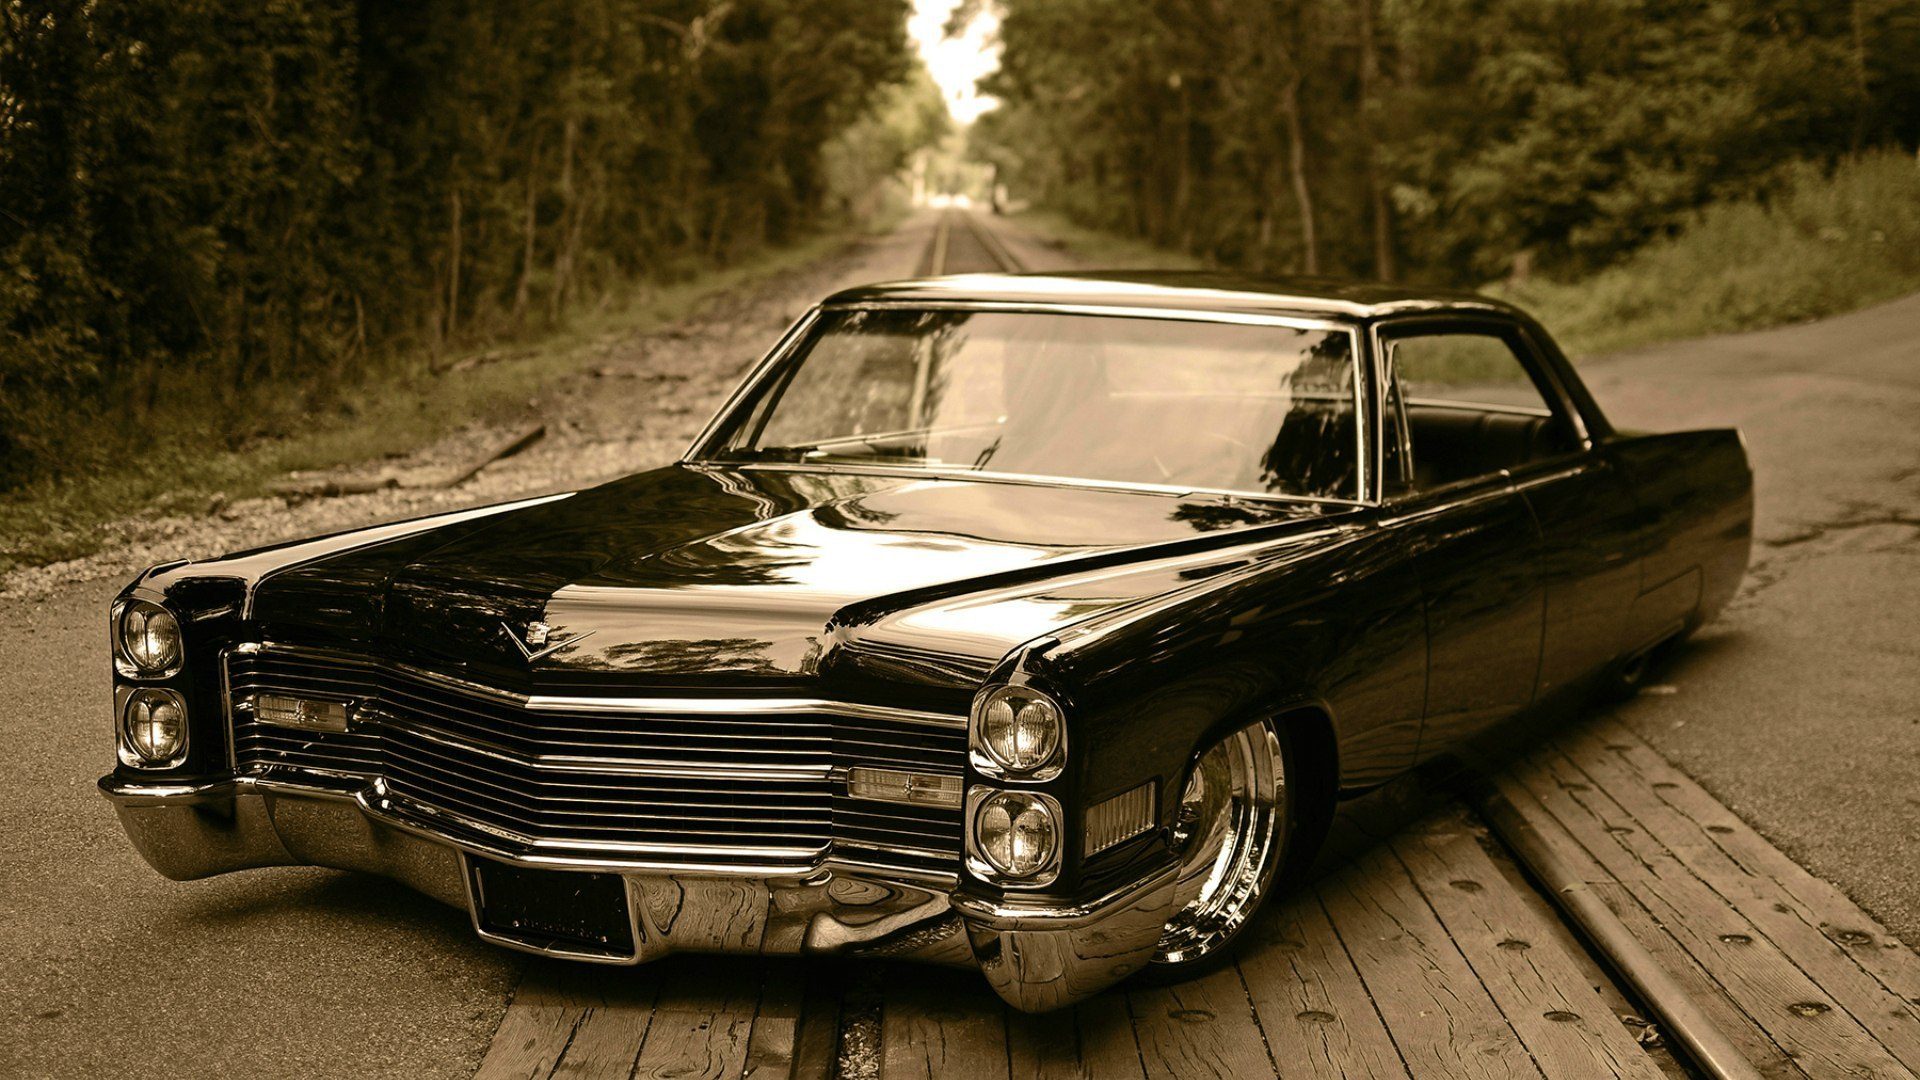 Black Cadillac on a Railway in the Woods 935.72 Kb